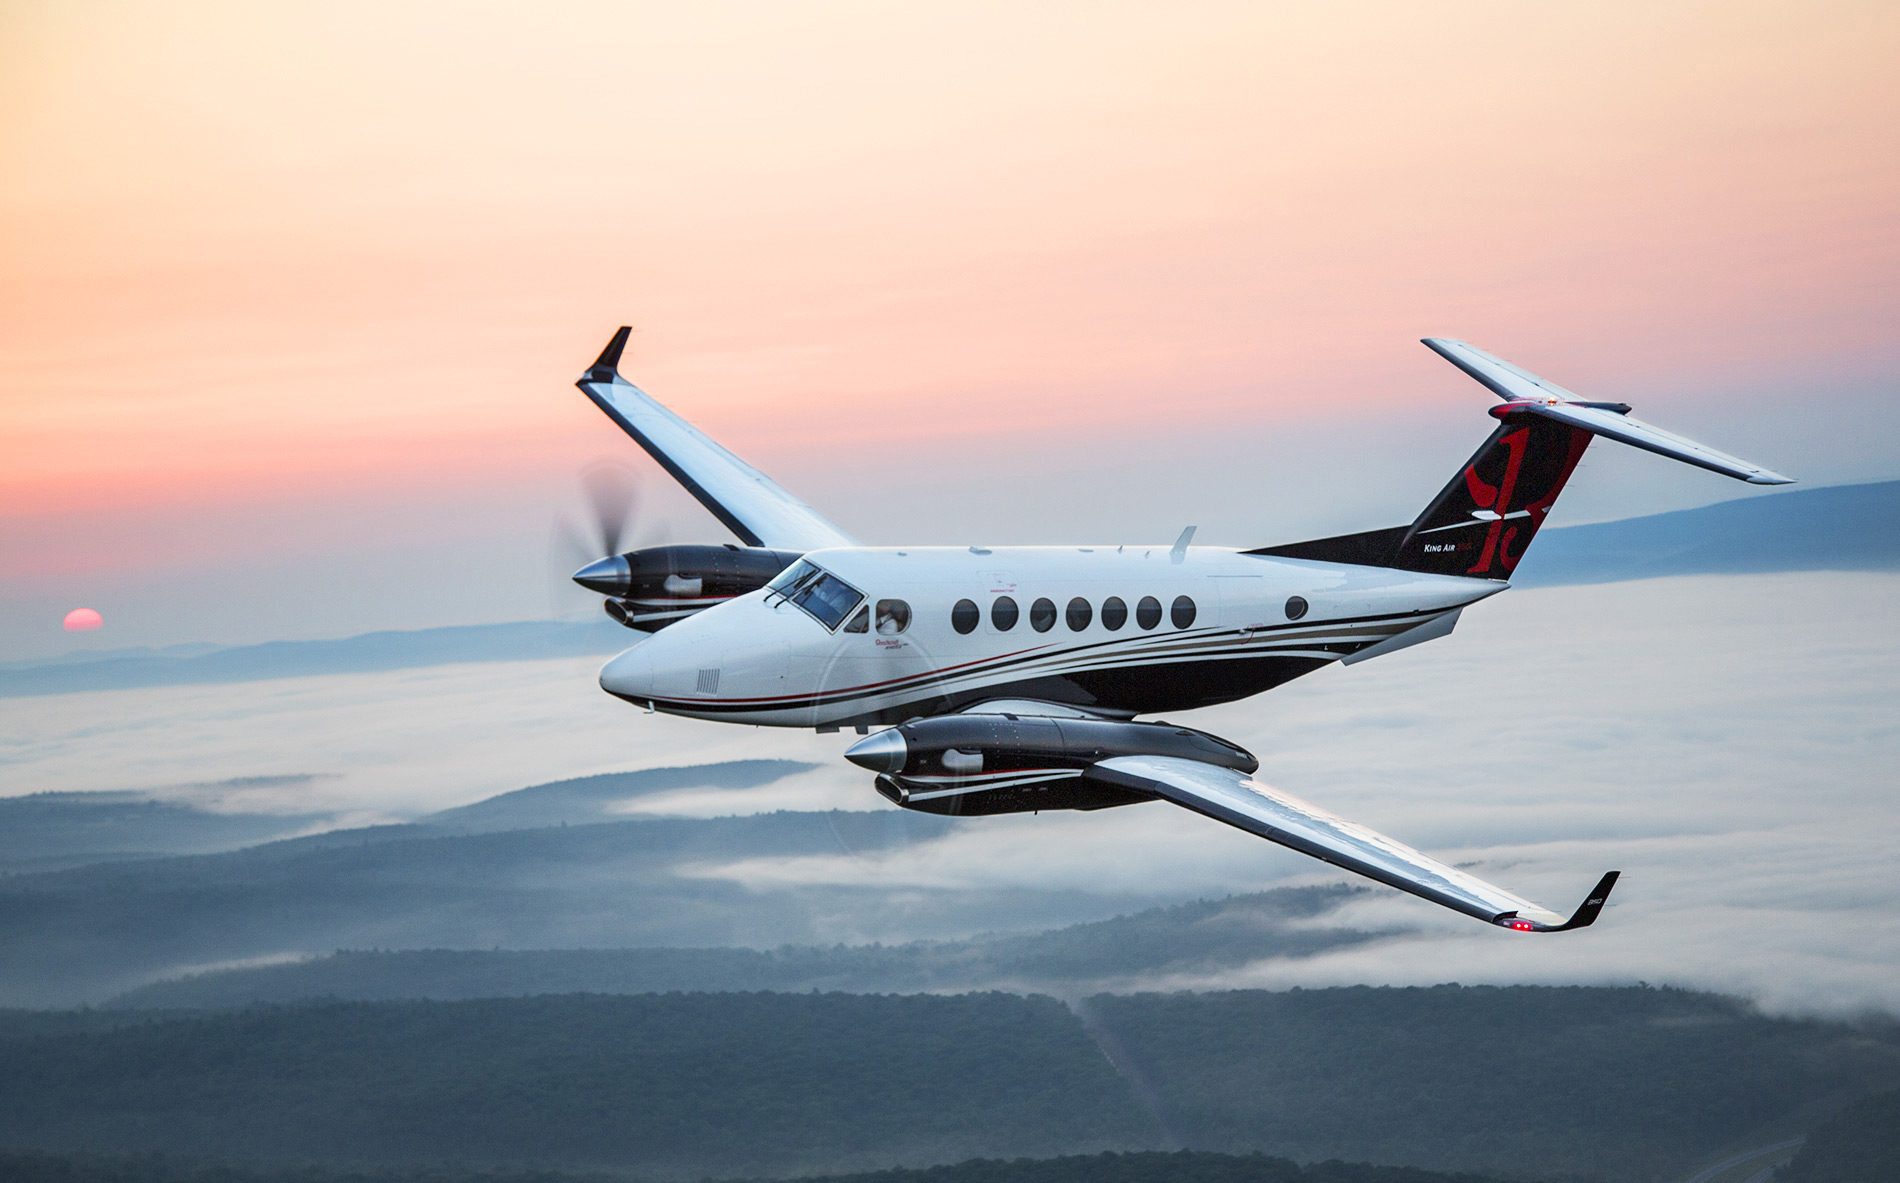 Beechcraft King Air 350 in flight